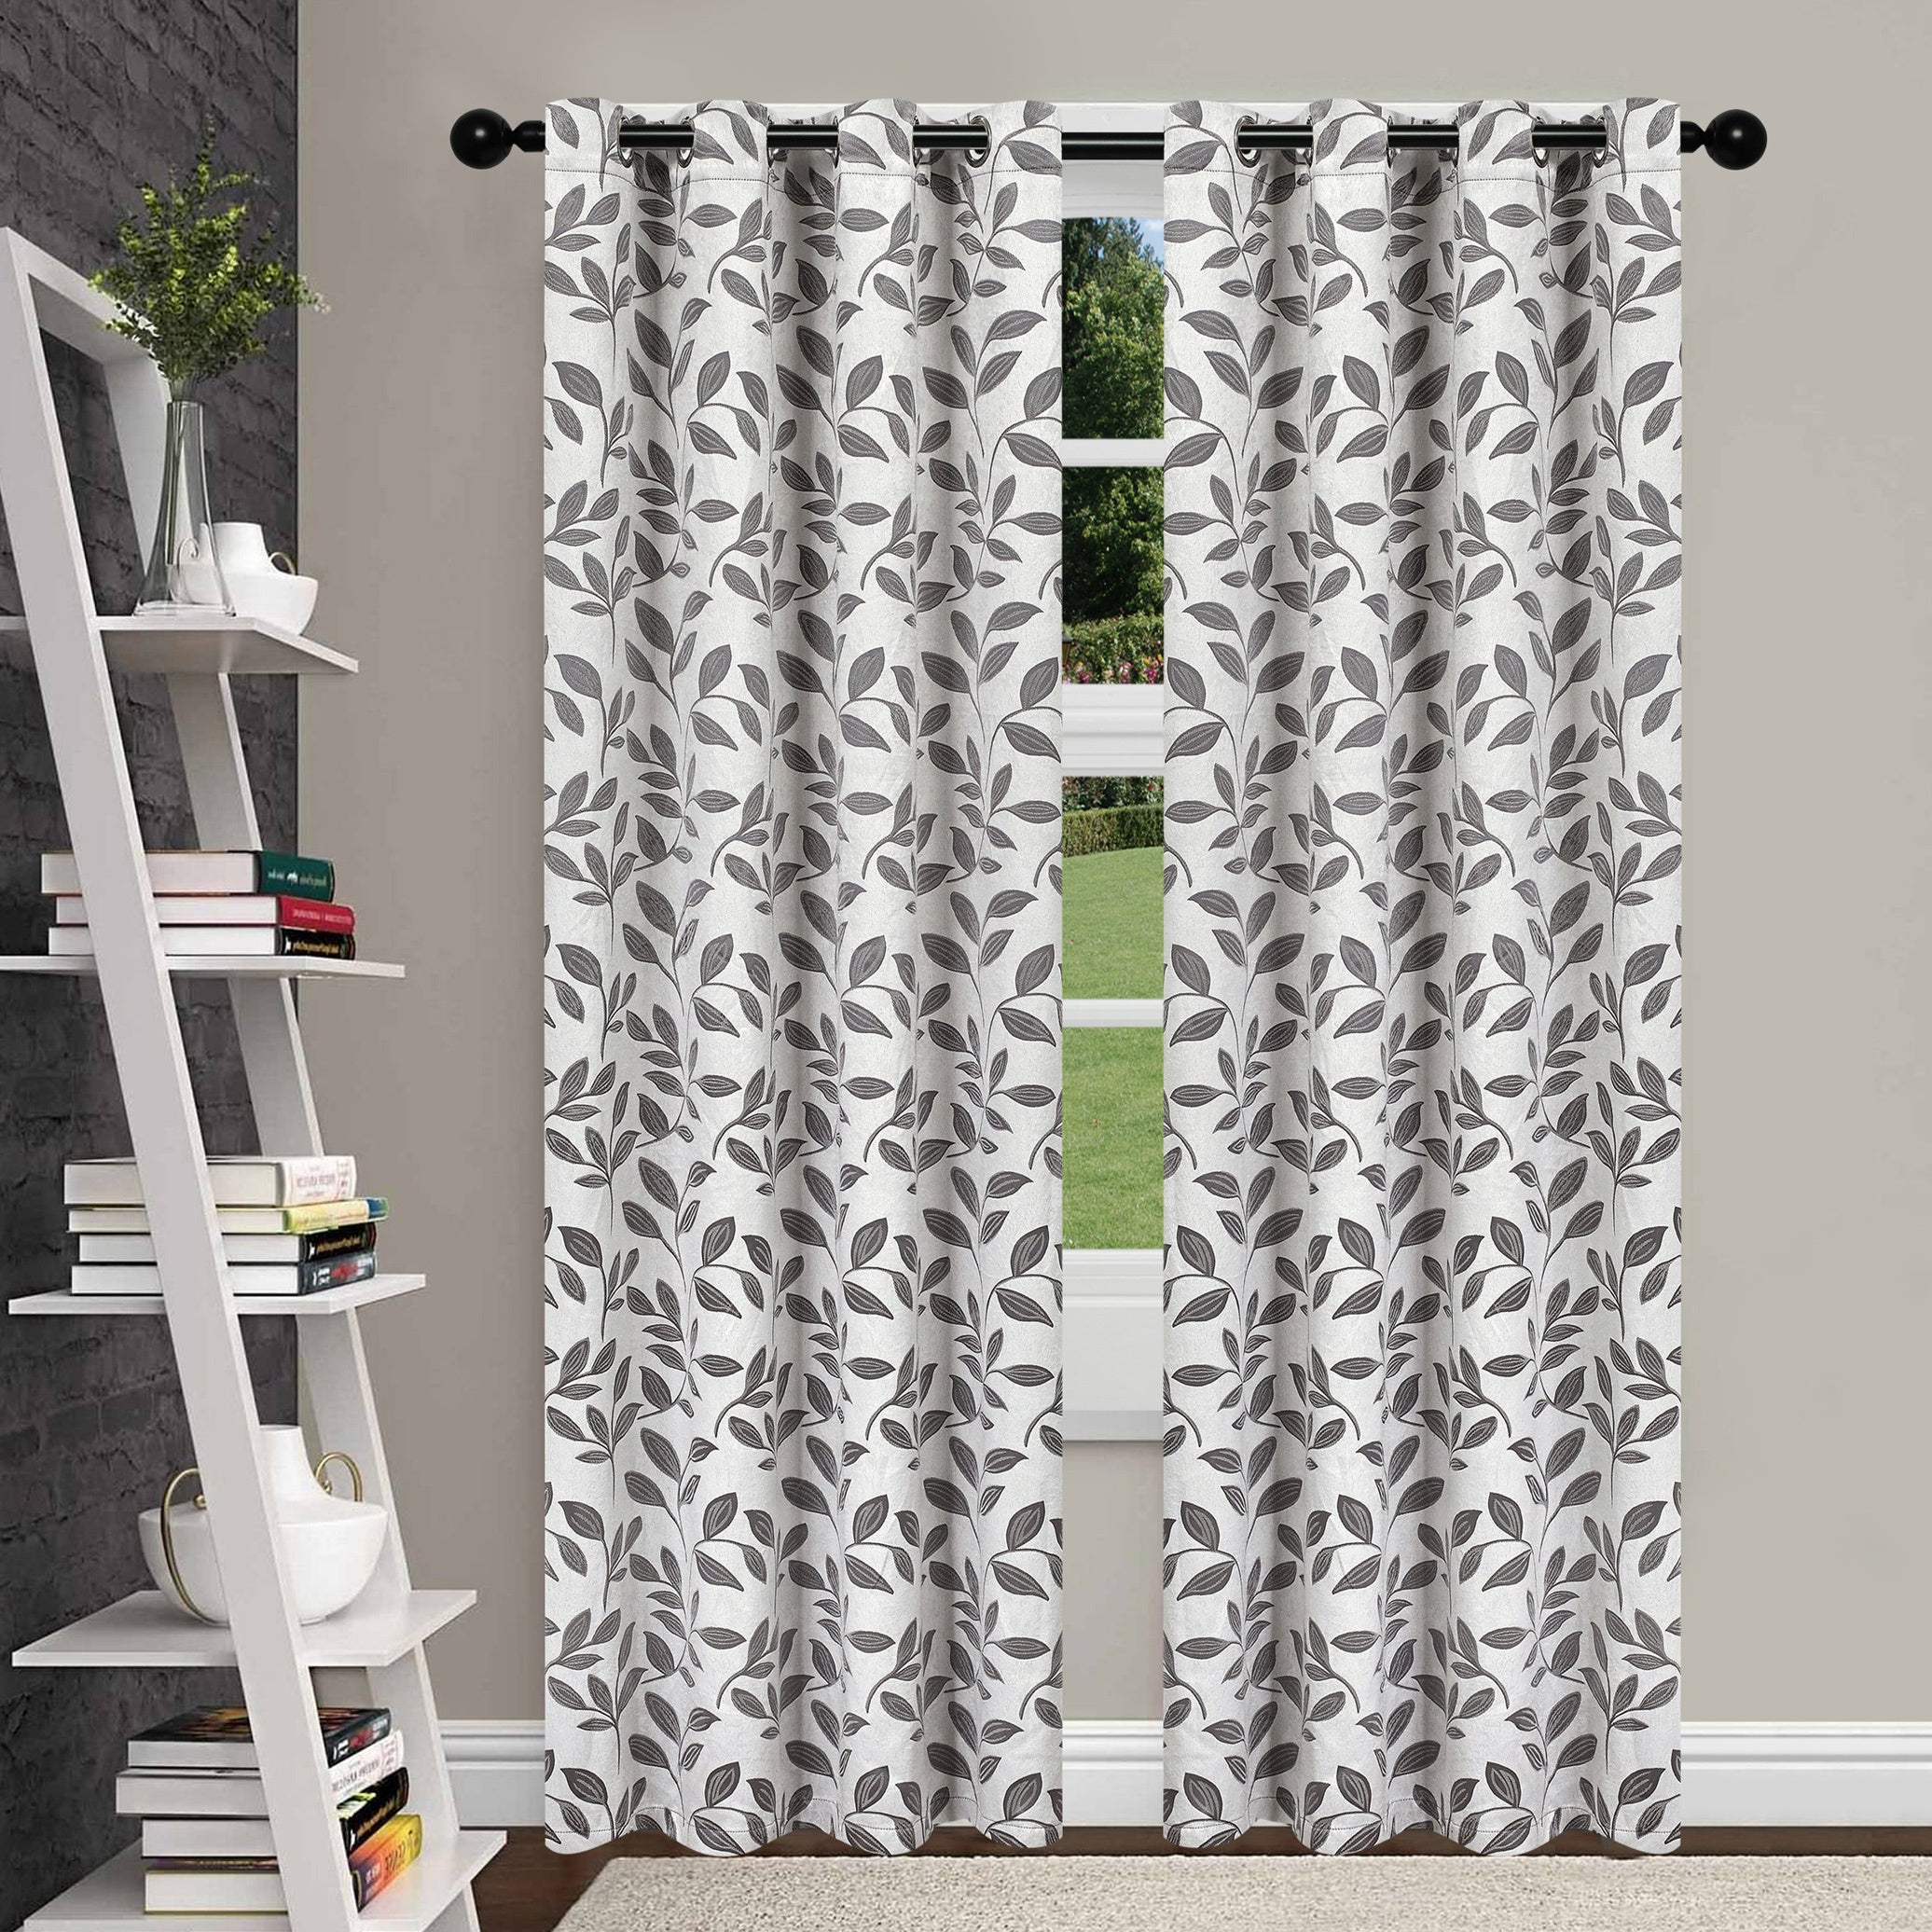 Superior Leaves Insulated Thermal Blackout Grommet Curtain Panel Pair Within Favorite Superior Leaves Insulated Thermal Blackout Grommet Curtain Panel Pairs (View 12 of 20)